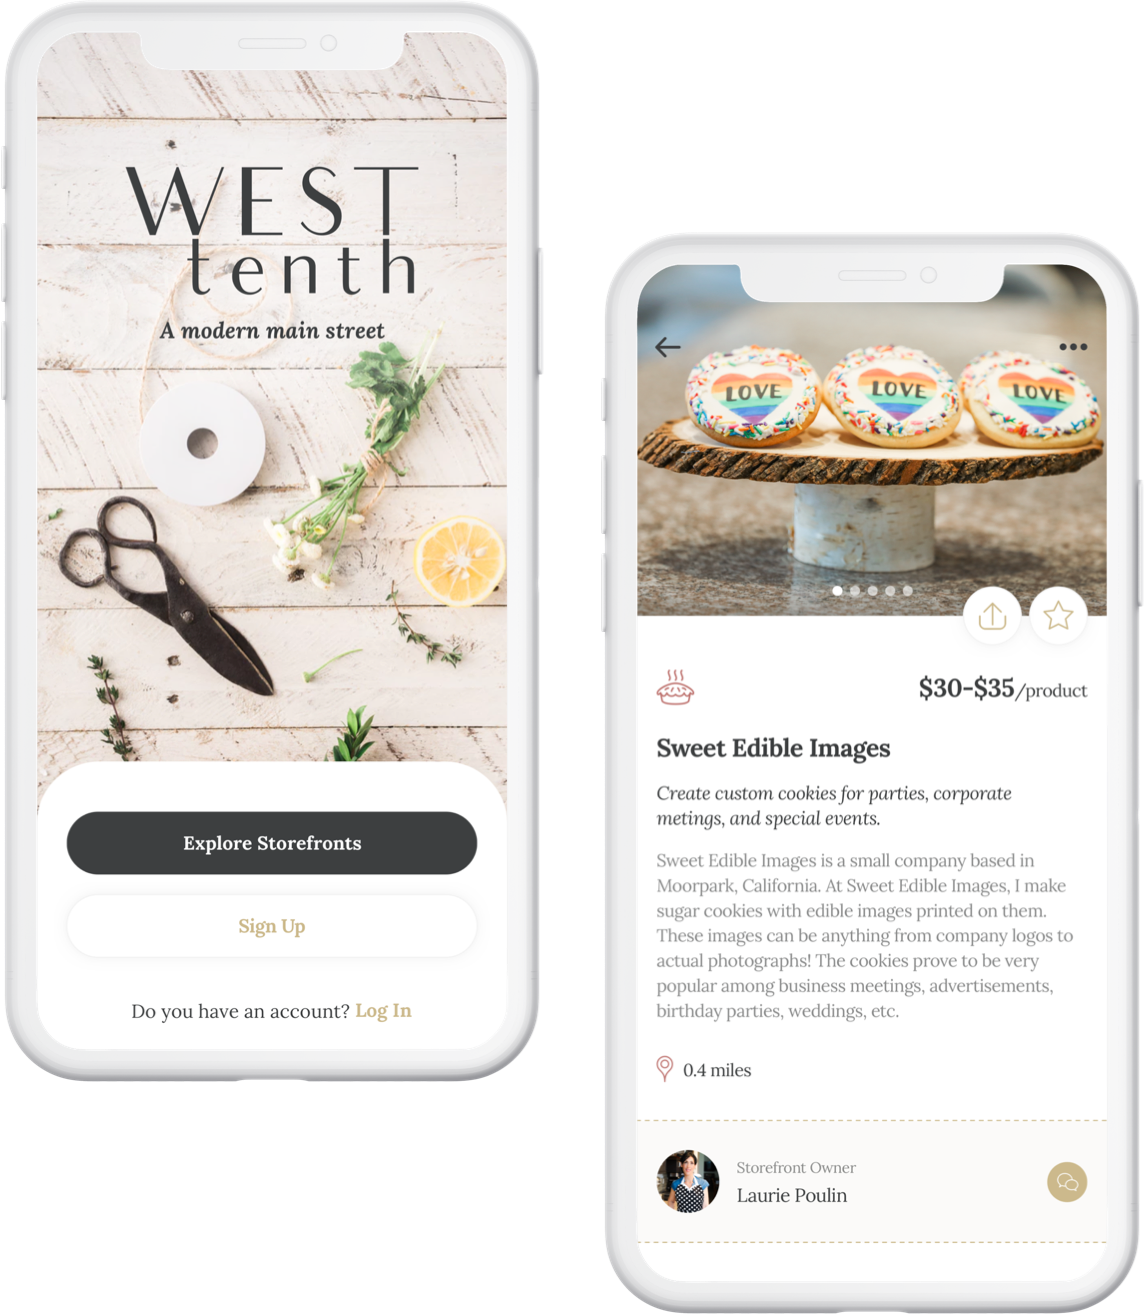 West Tenth App mockups: Browse Storefronts, Set Up Shop, Request a Service